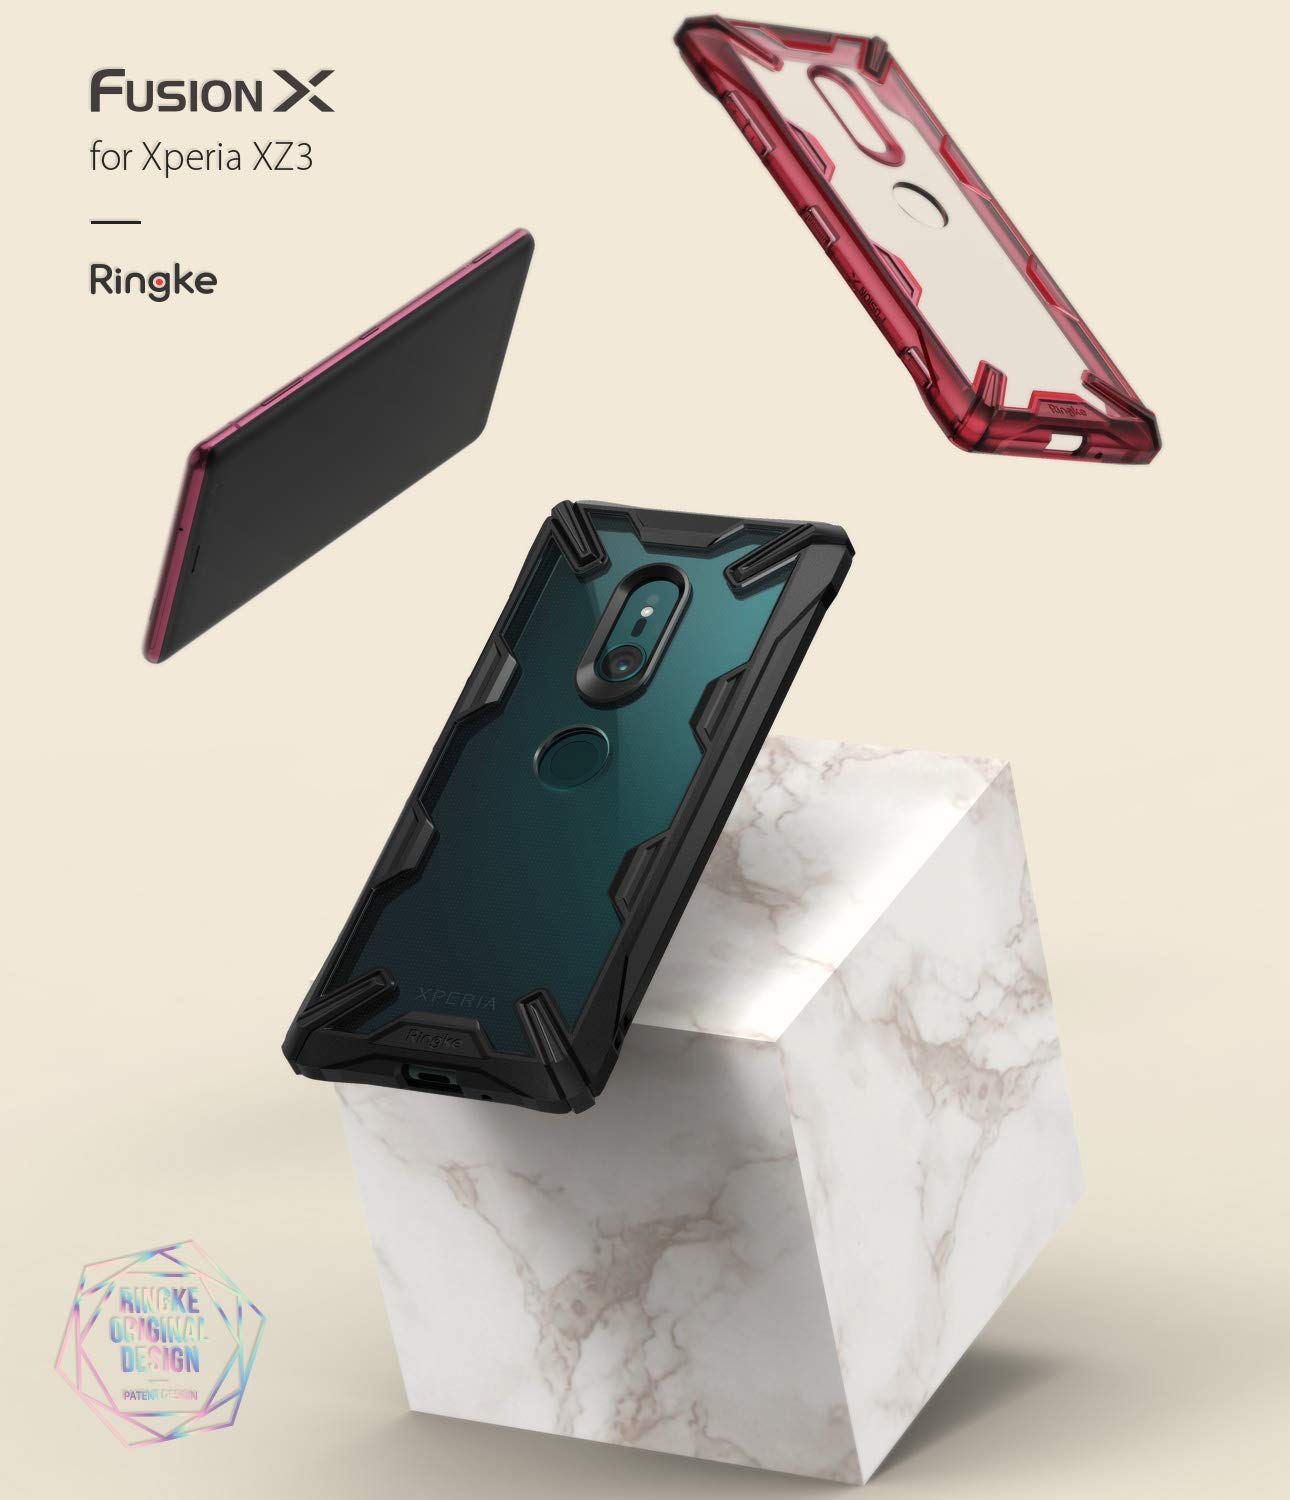 sony xperia xz3 fusion-x case ruby red